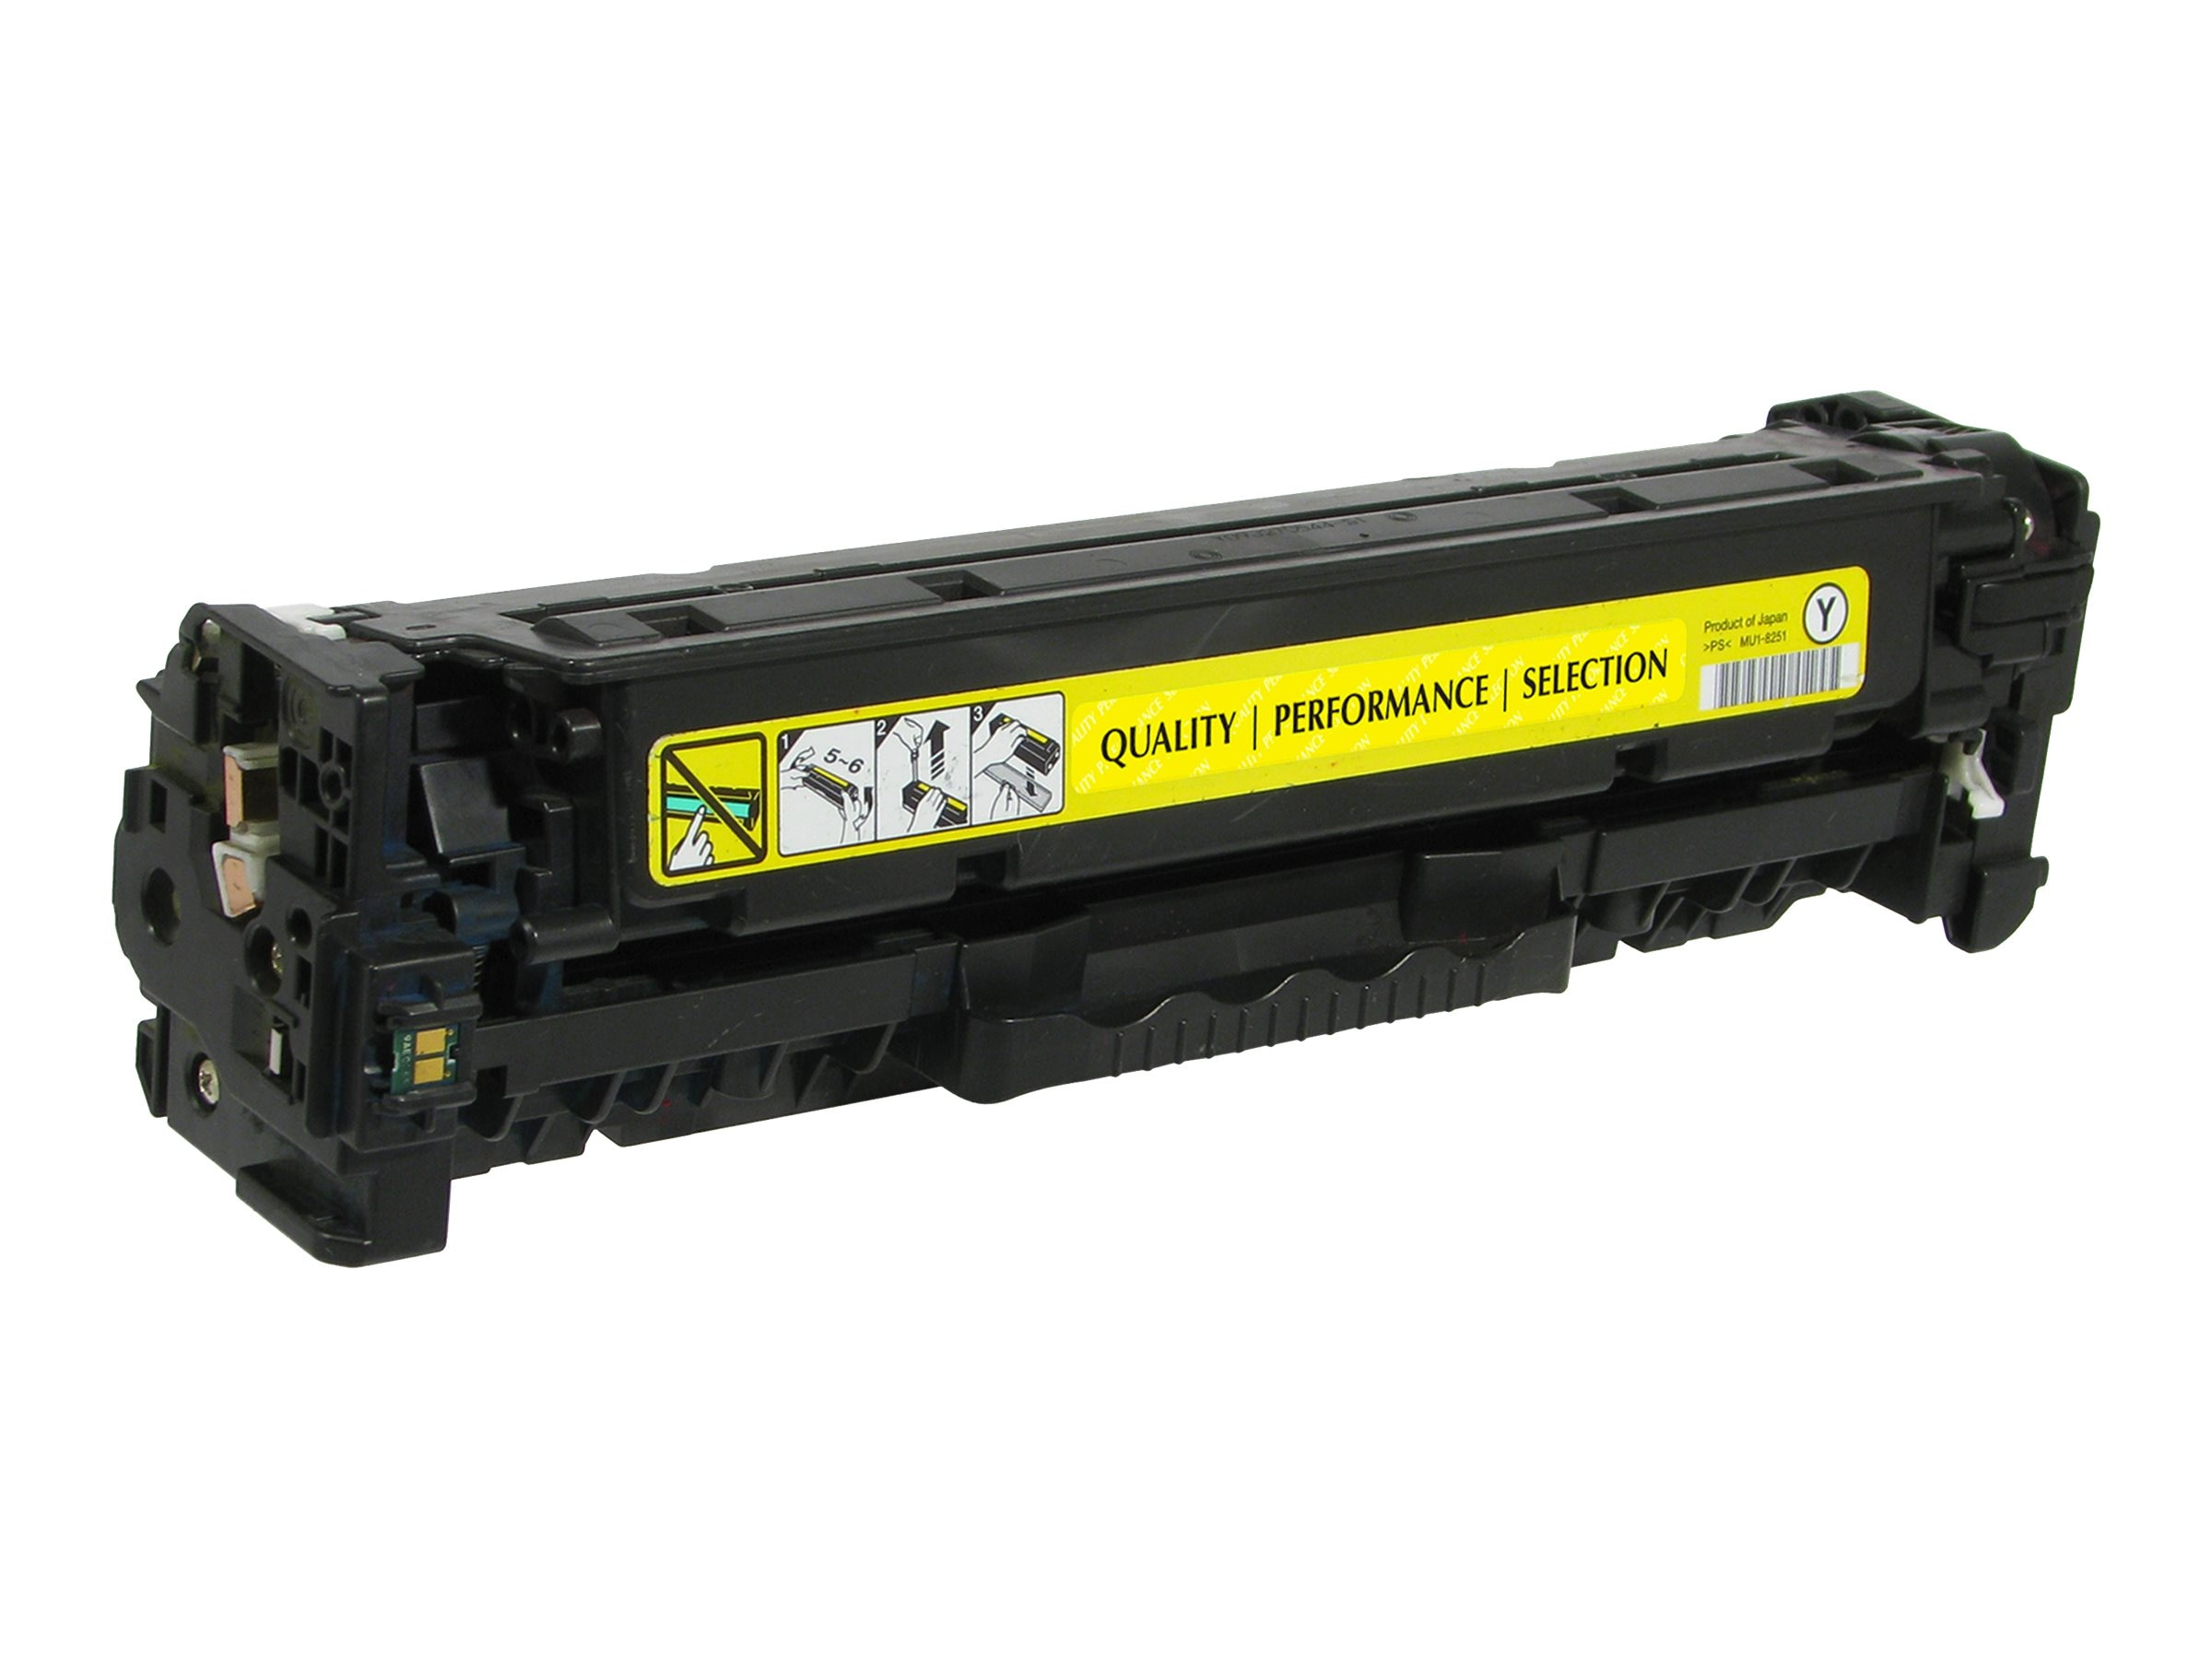 V7 CE412A Yellow Toner Cartridge for HP LaserJet Pro Color M375 M451, V7M451Y